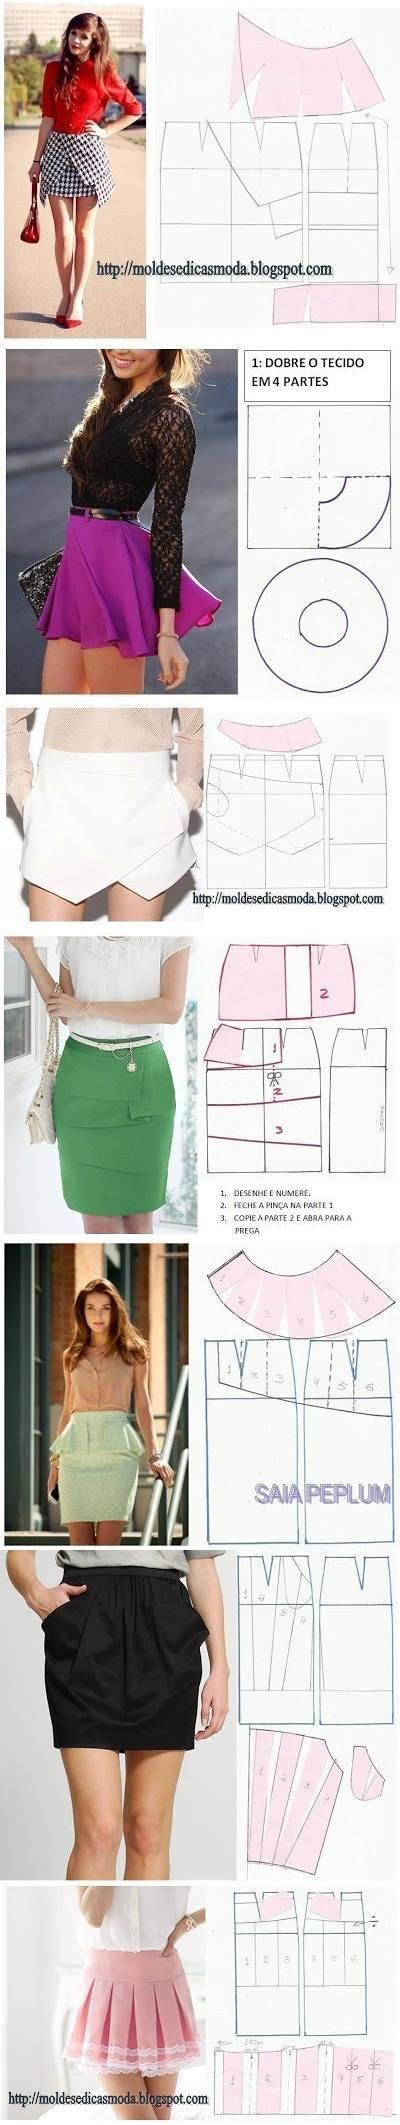 DIY Stylish Skirts DIY Stylish Skirts